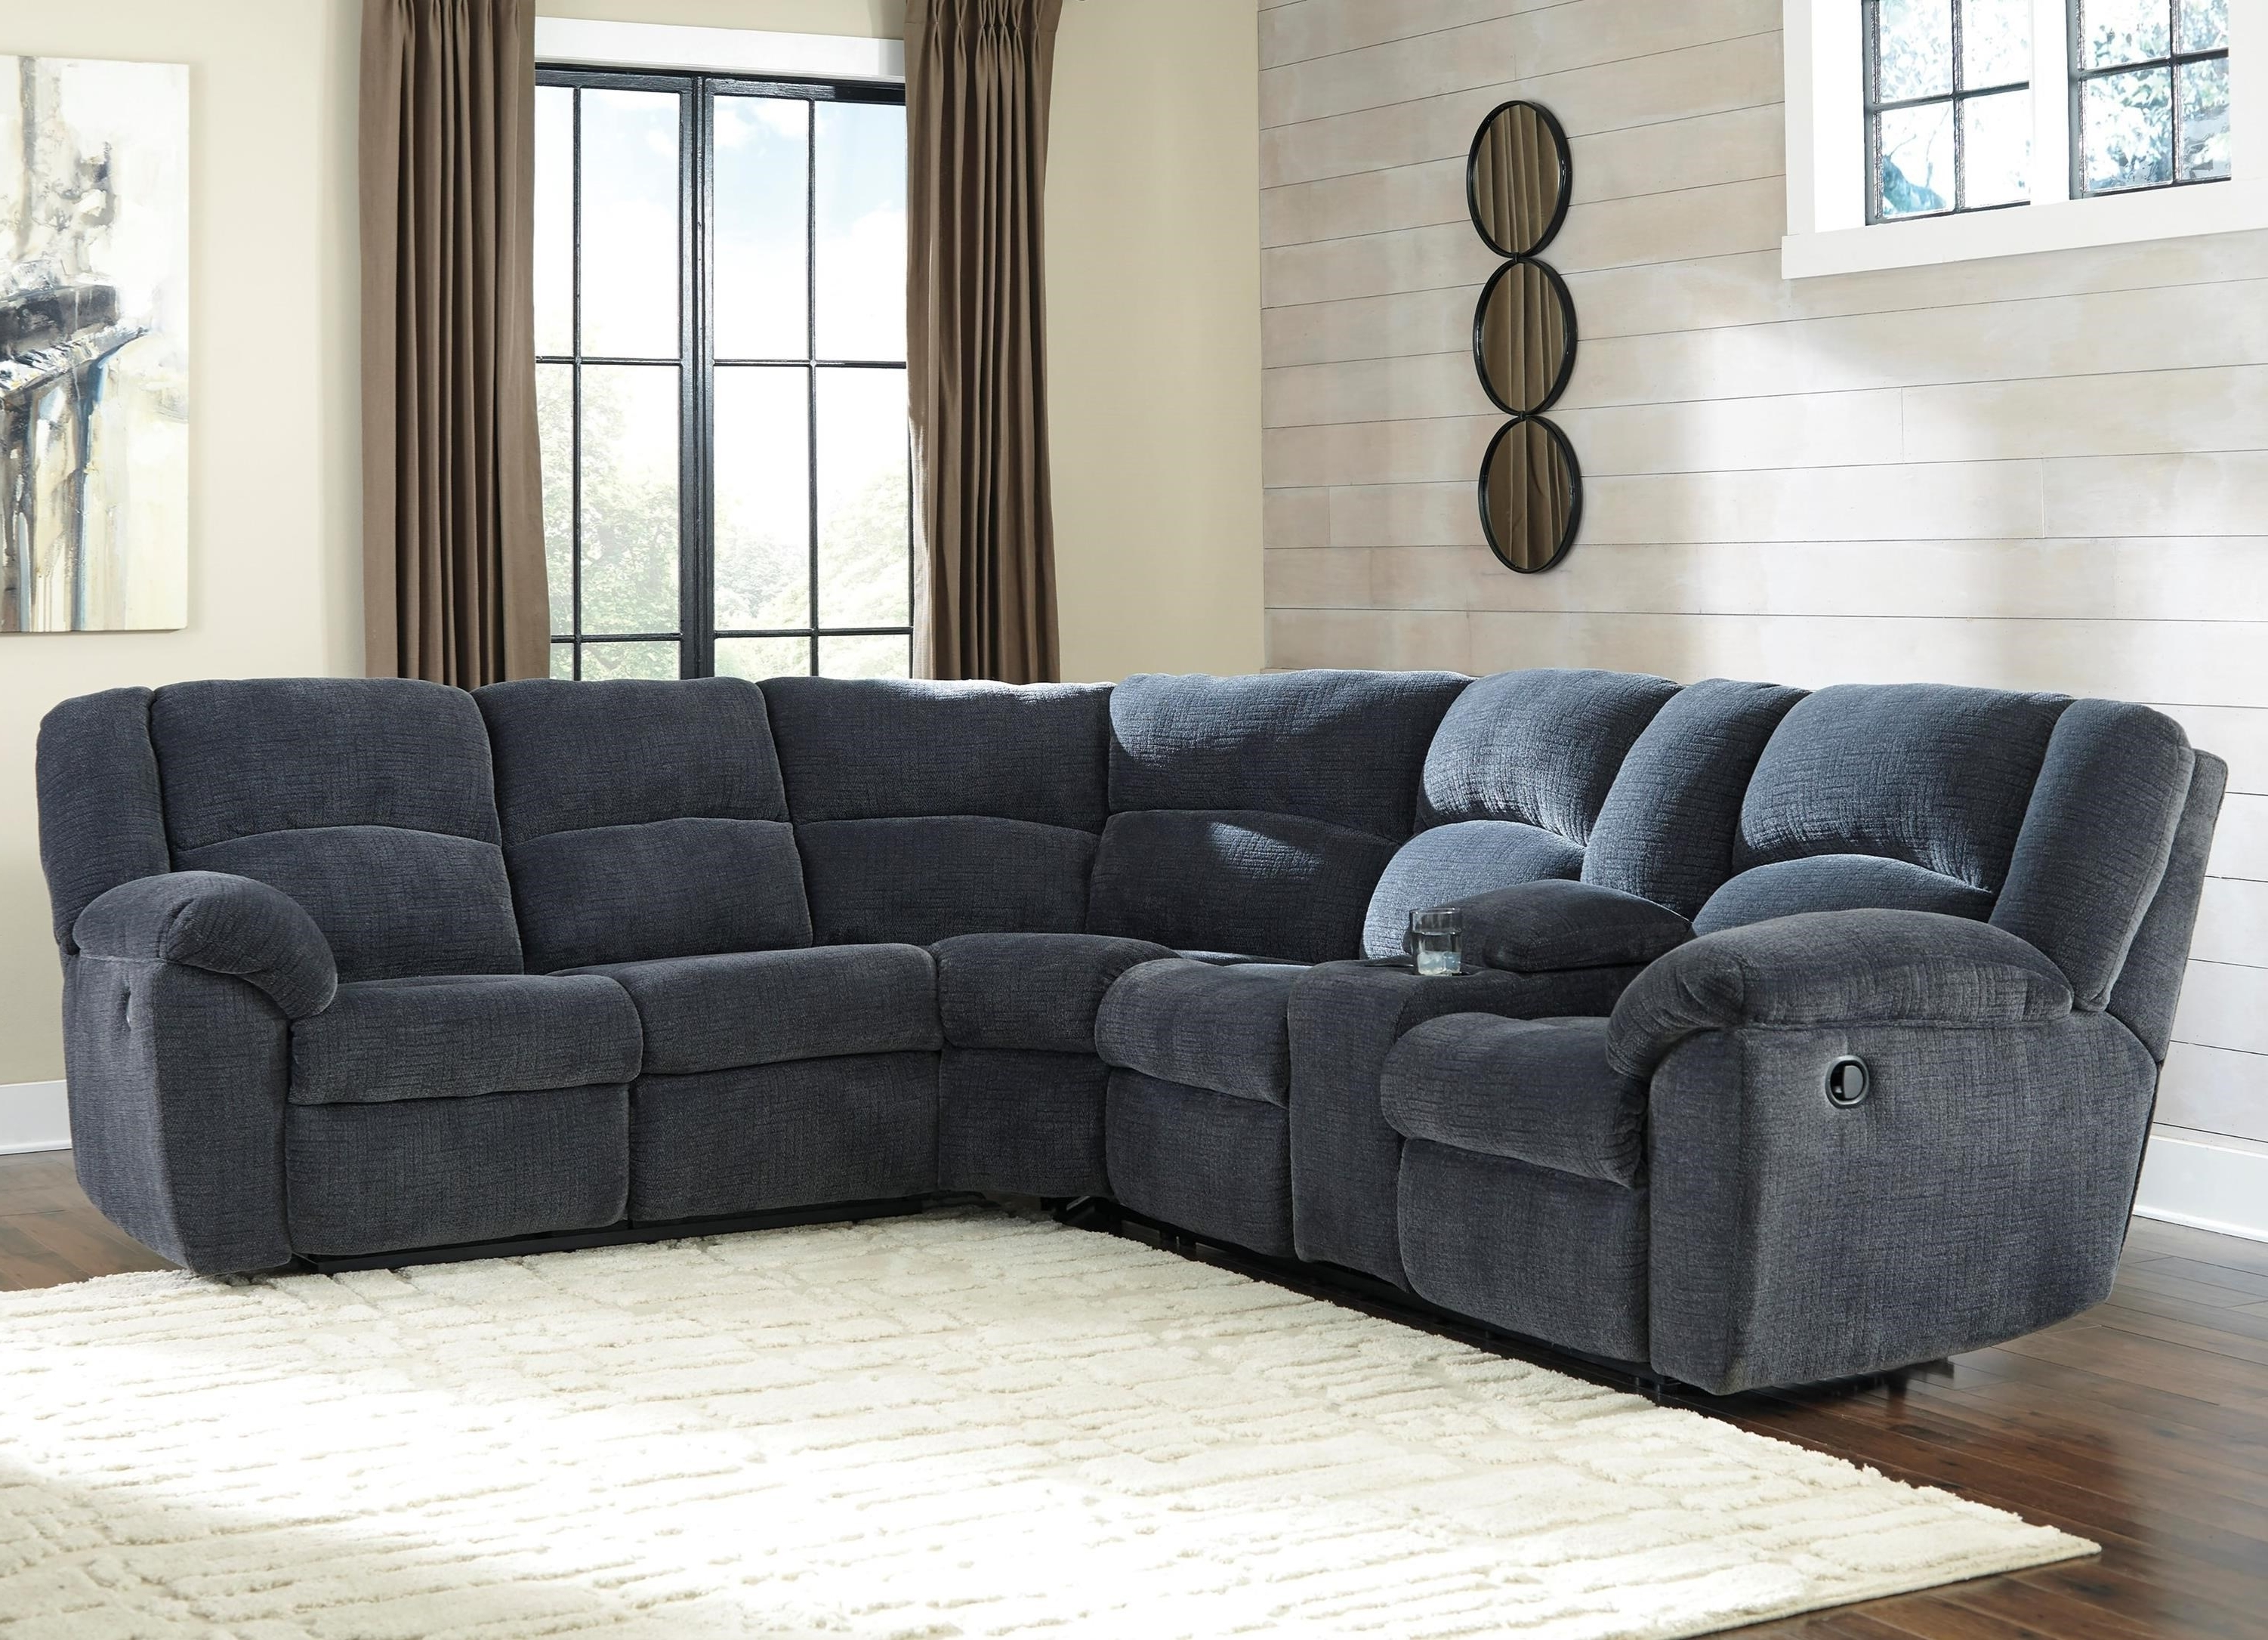 Ashley Furniture Regarding Greenville Nc Sectional Sofas (View 2 of 20)